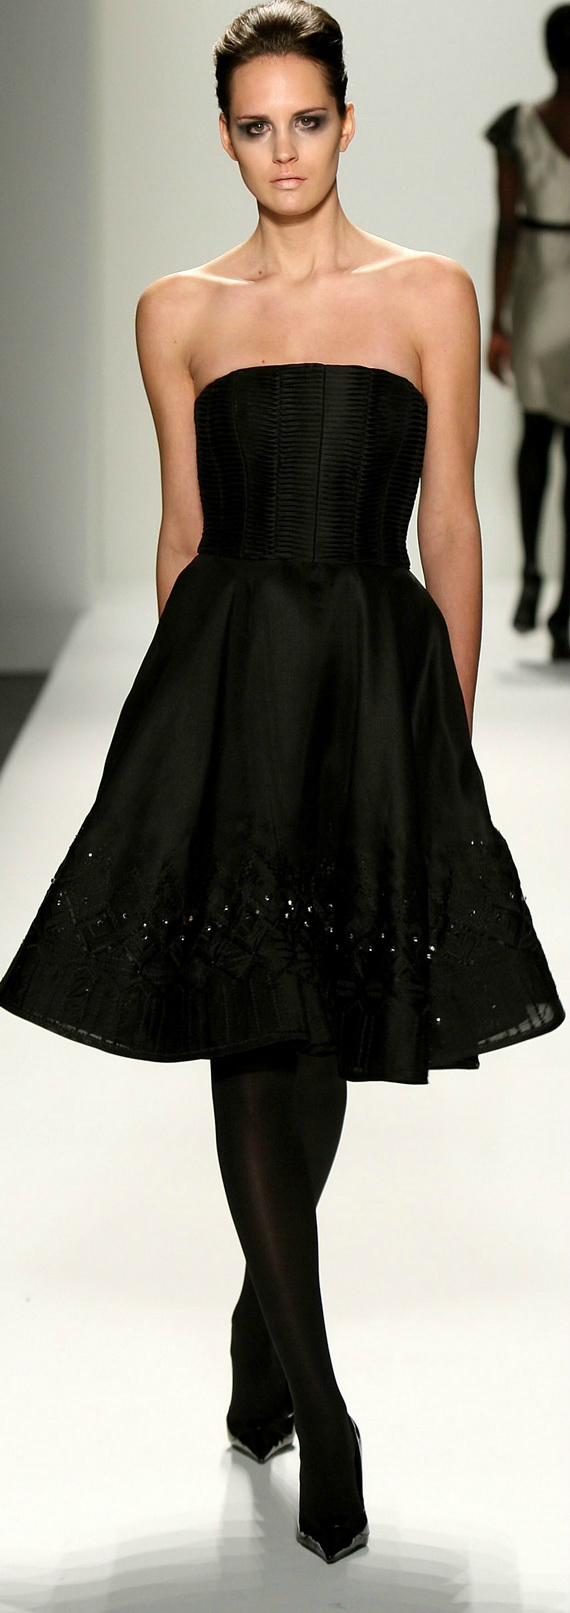 The dress is chanel - Chanel Little Black Dress On Runway 2014 The Dress That She Originally Made Popular In